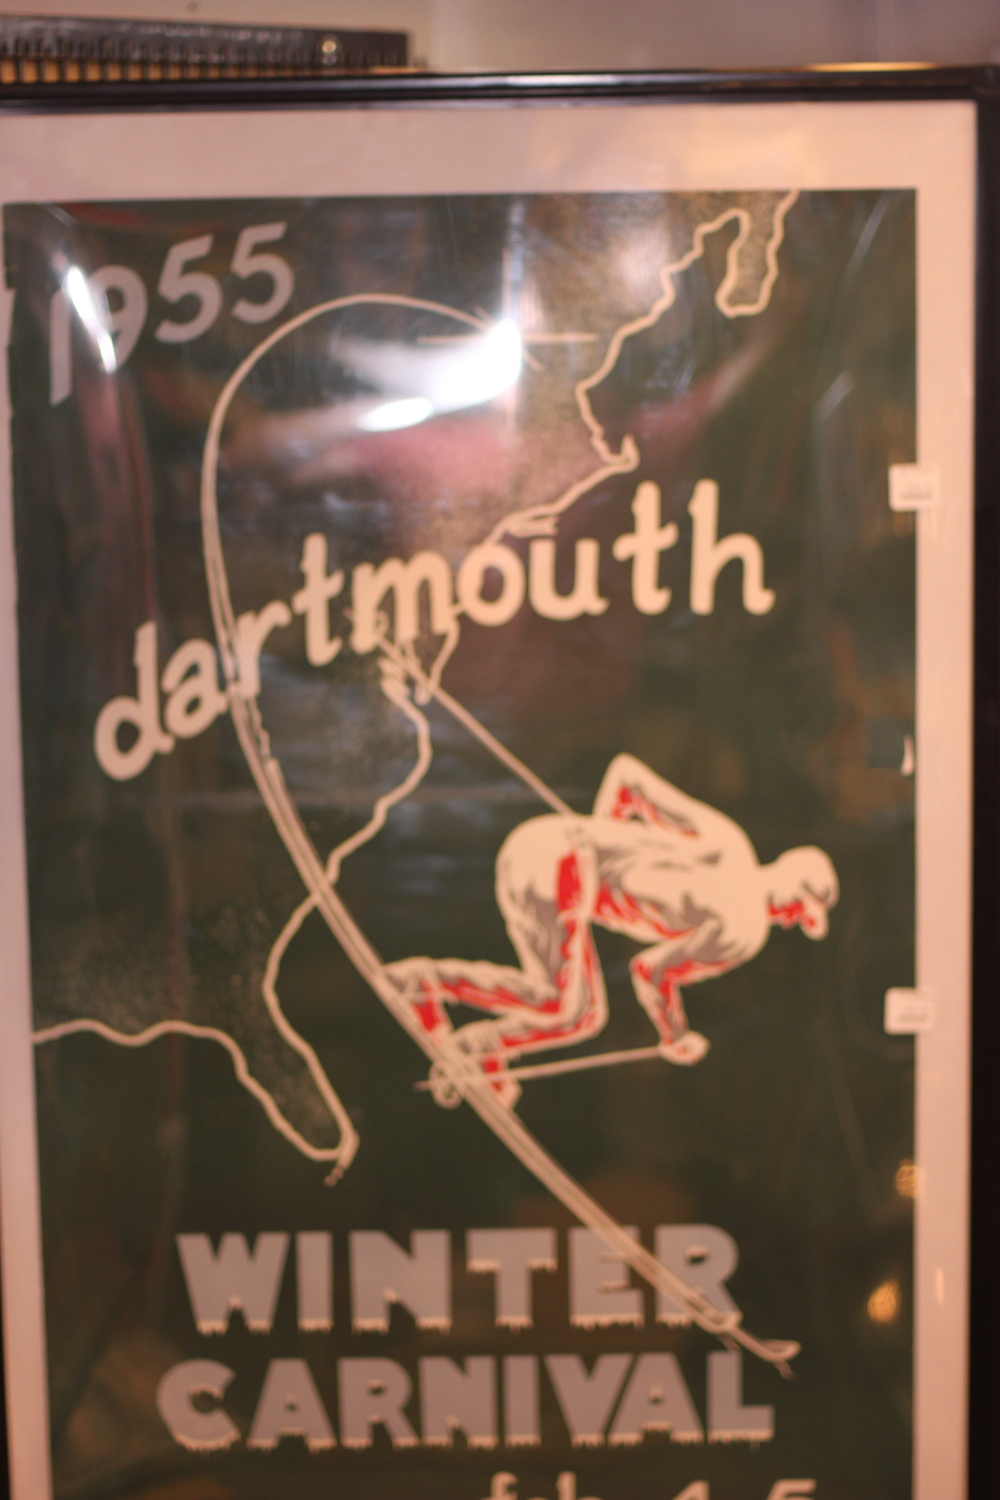 Dartmouth Winter Carnival 1955